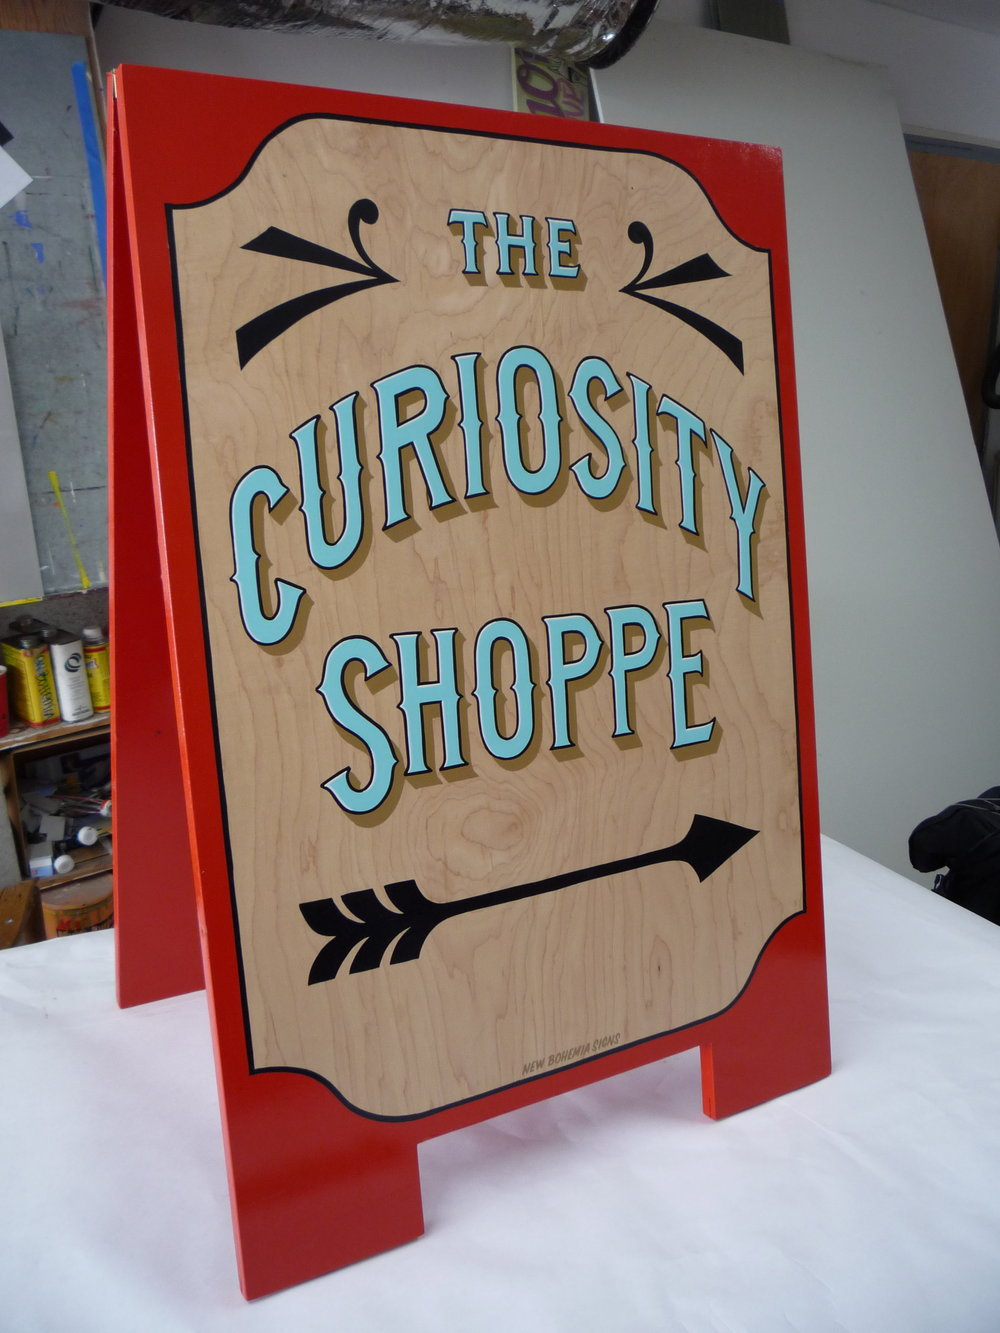 A-FRAME-the-curiosity-shoppe-sandwich-board-again_3131872232_o.jpg